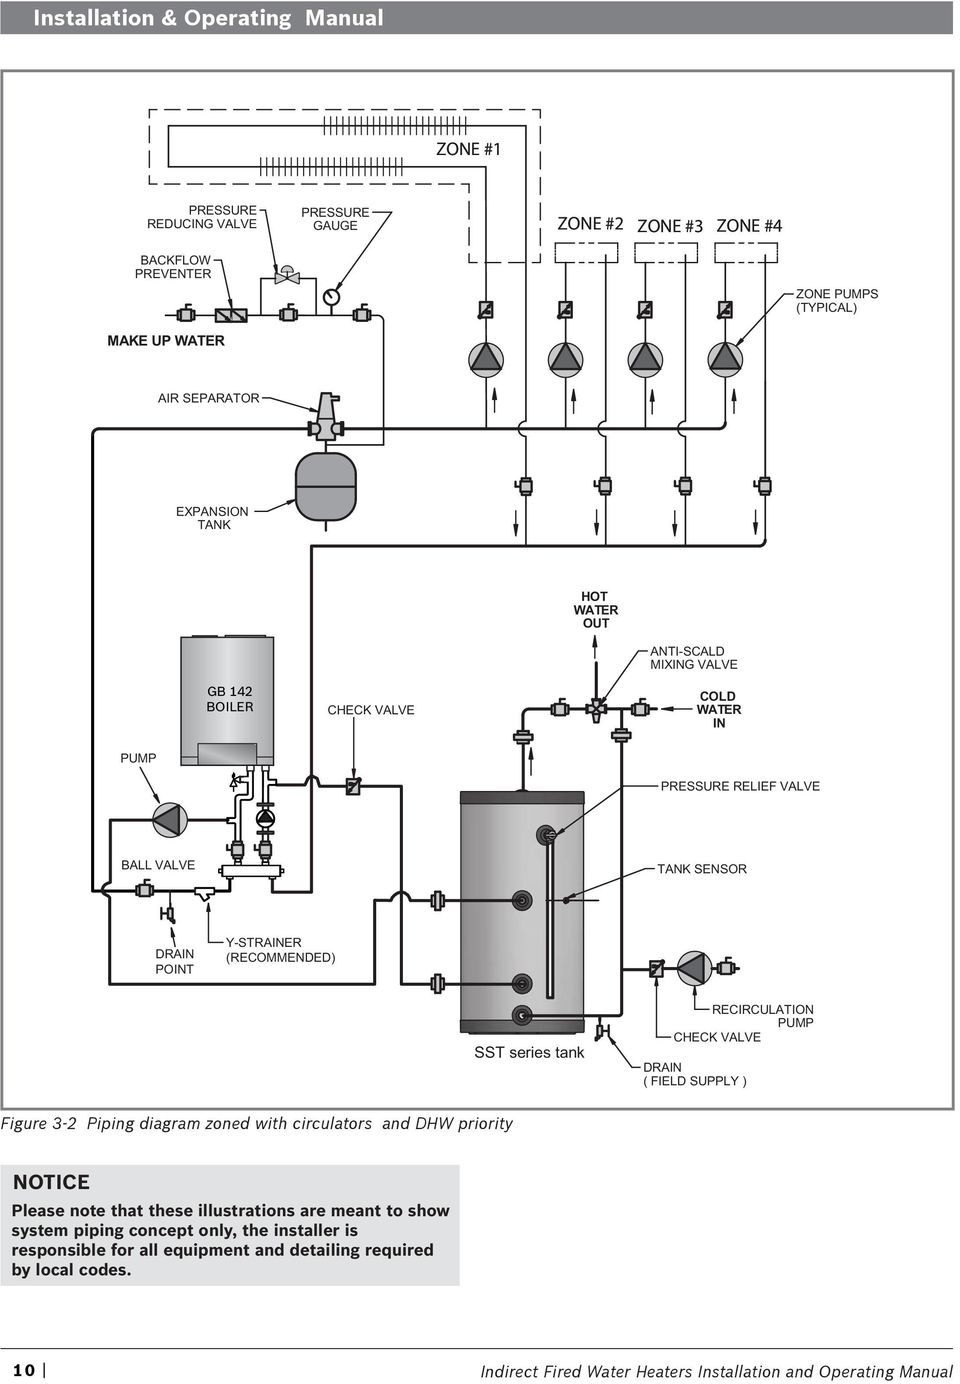 RECIRCULATION PUMP CHECK VALVE DRAIN ( FIELD SUPPLY ) Figure 3-2 Piping diagram zoned with circulators and DHW priority NOTICE Please note that these illustrations are meant